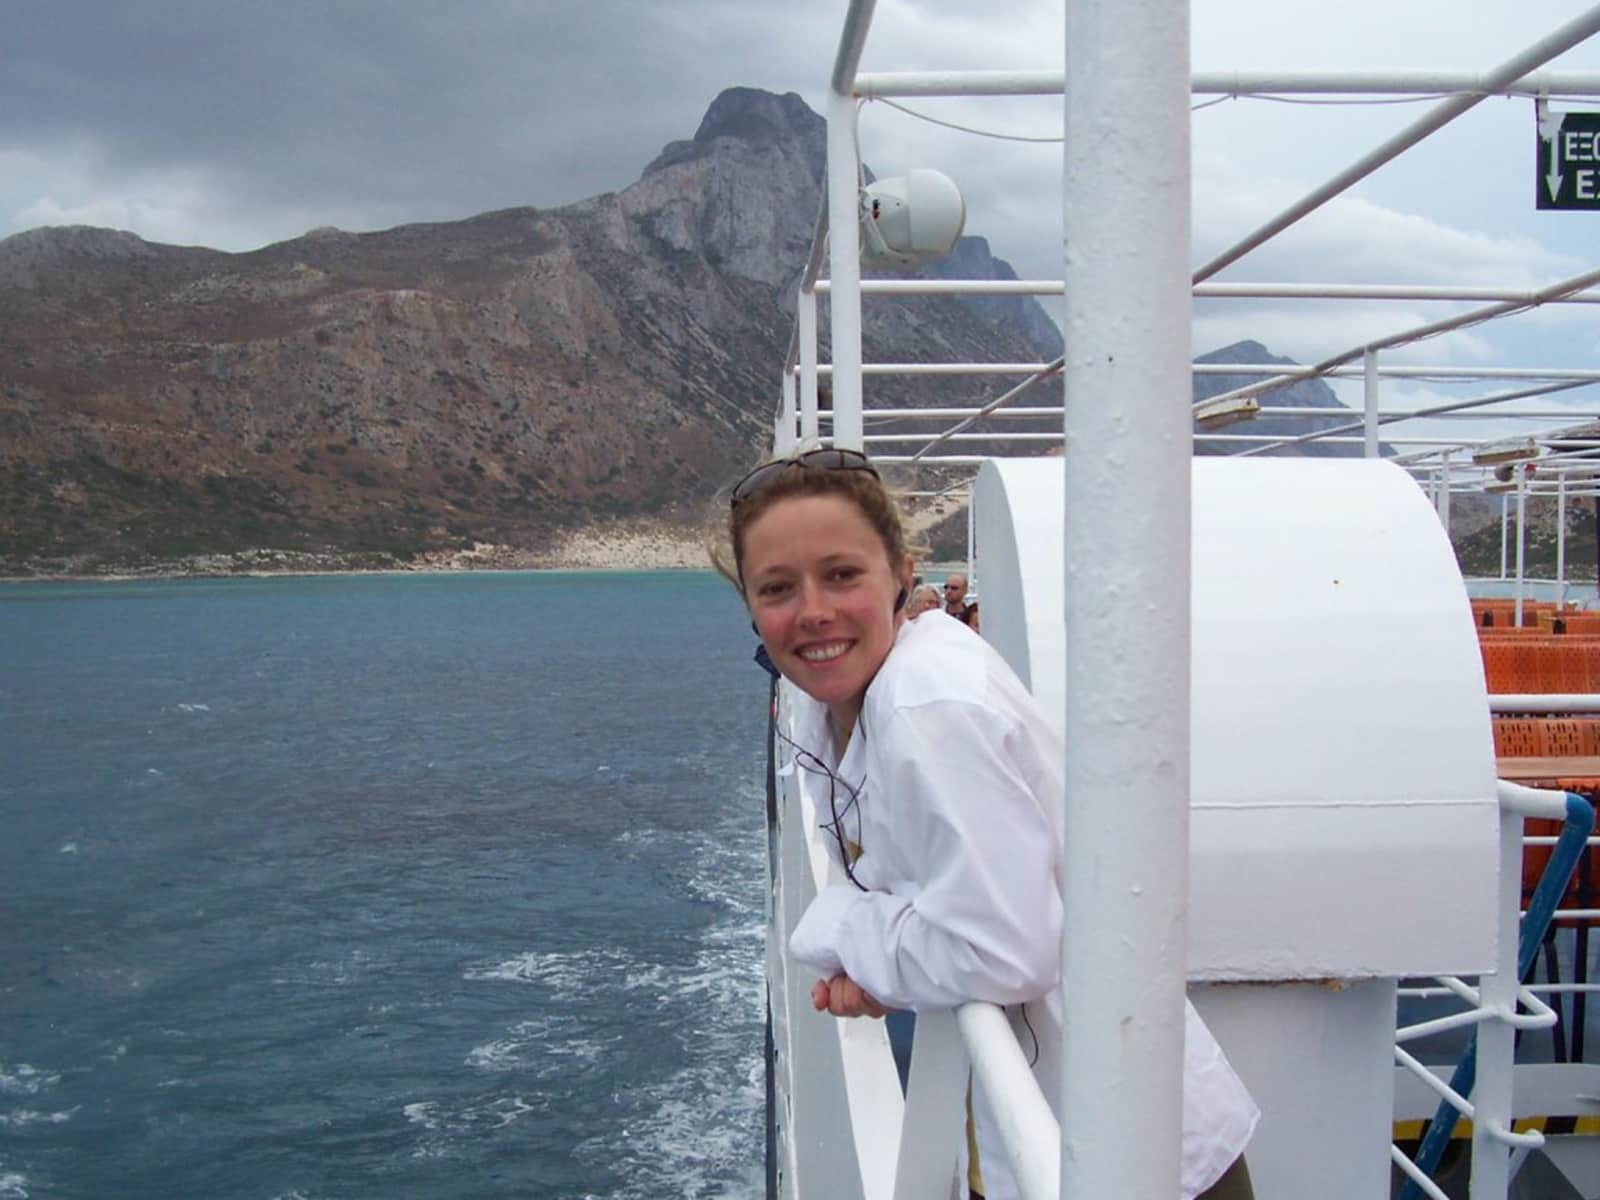 Anne-marie from Oxford, United Kingdom